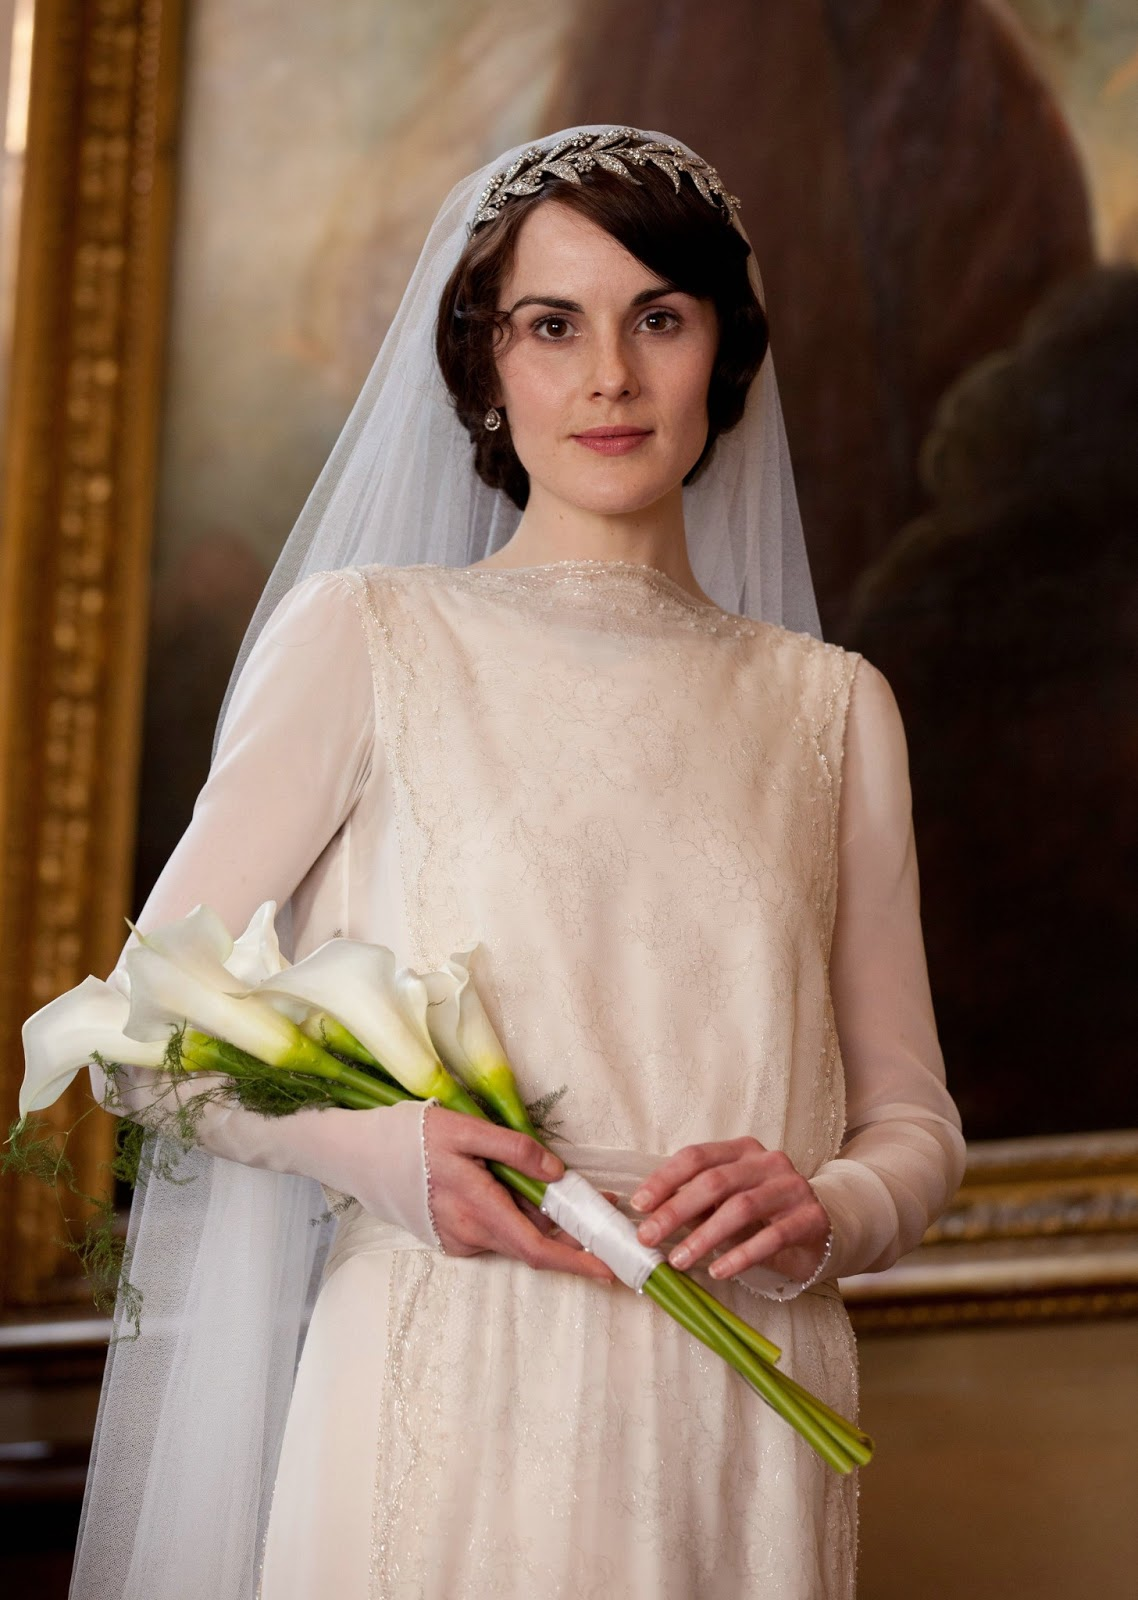 Downtown abby wedding on pinterest downton abbey jenny packham and